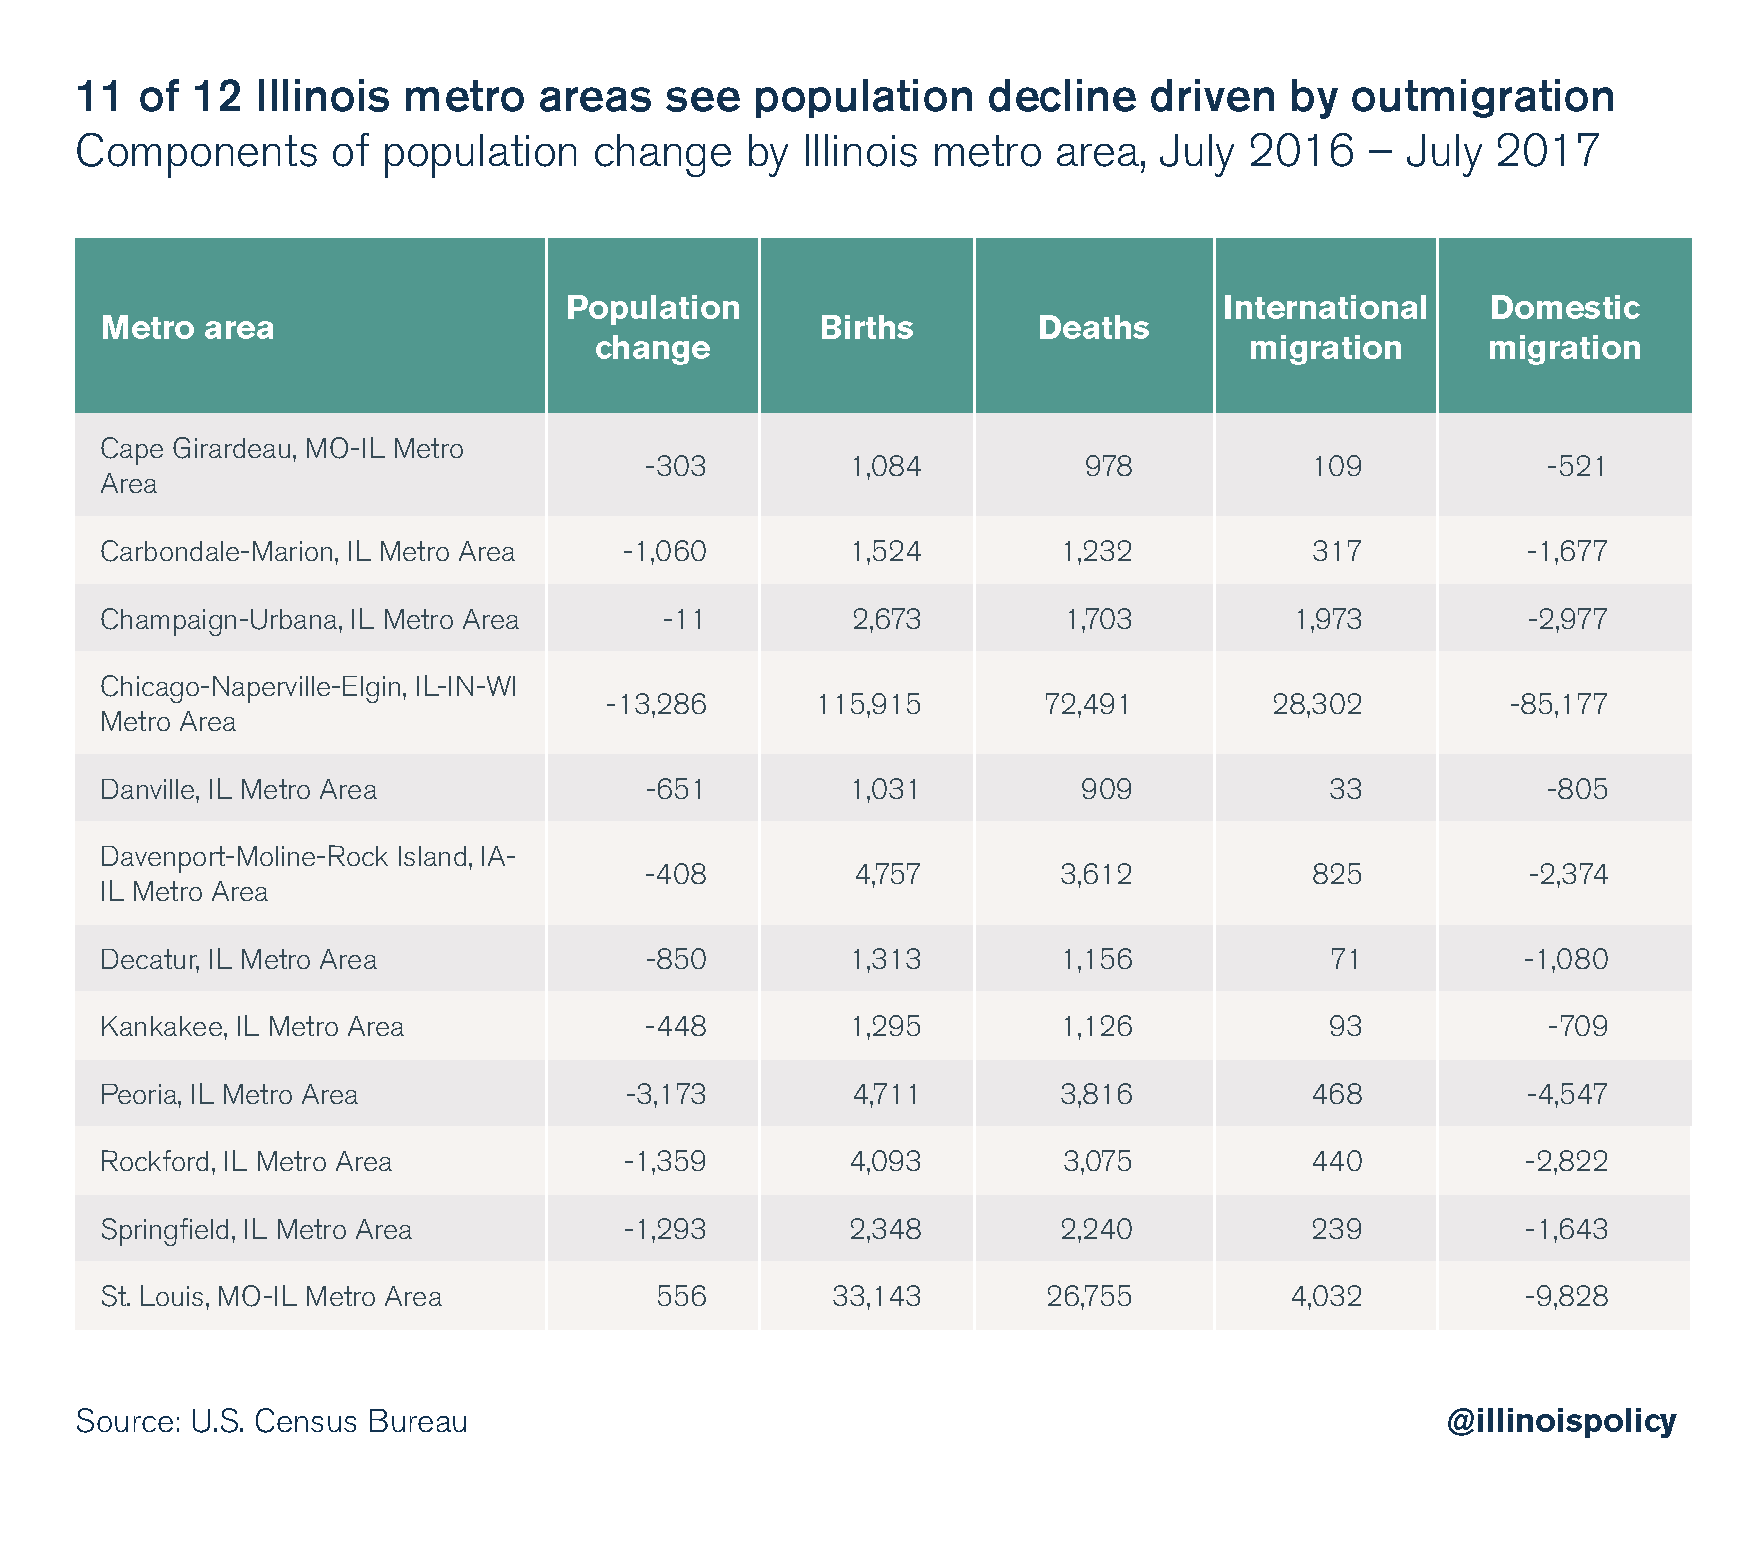 11 of 12 Illinois metro areas see population decline driven by outmigration